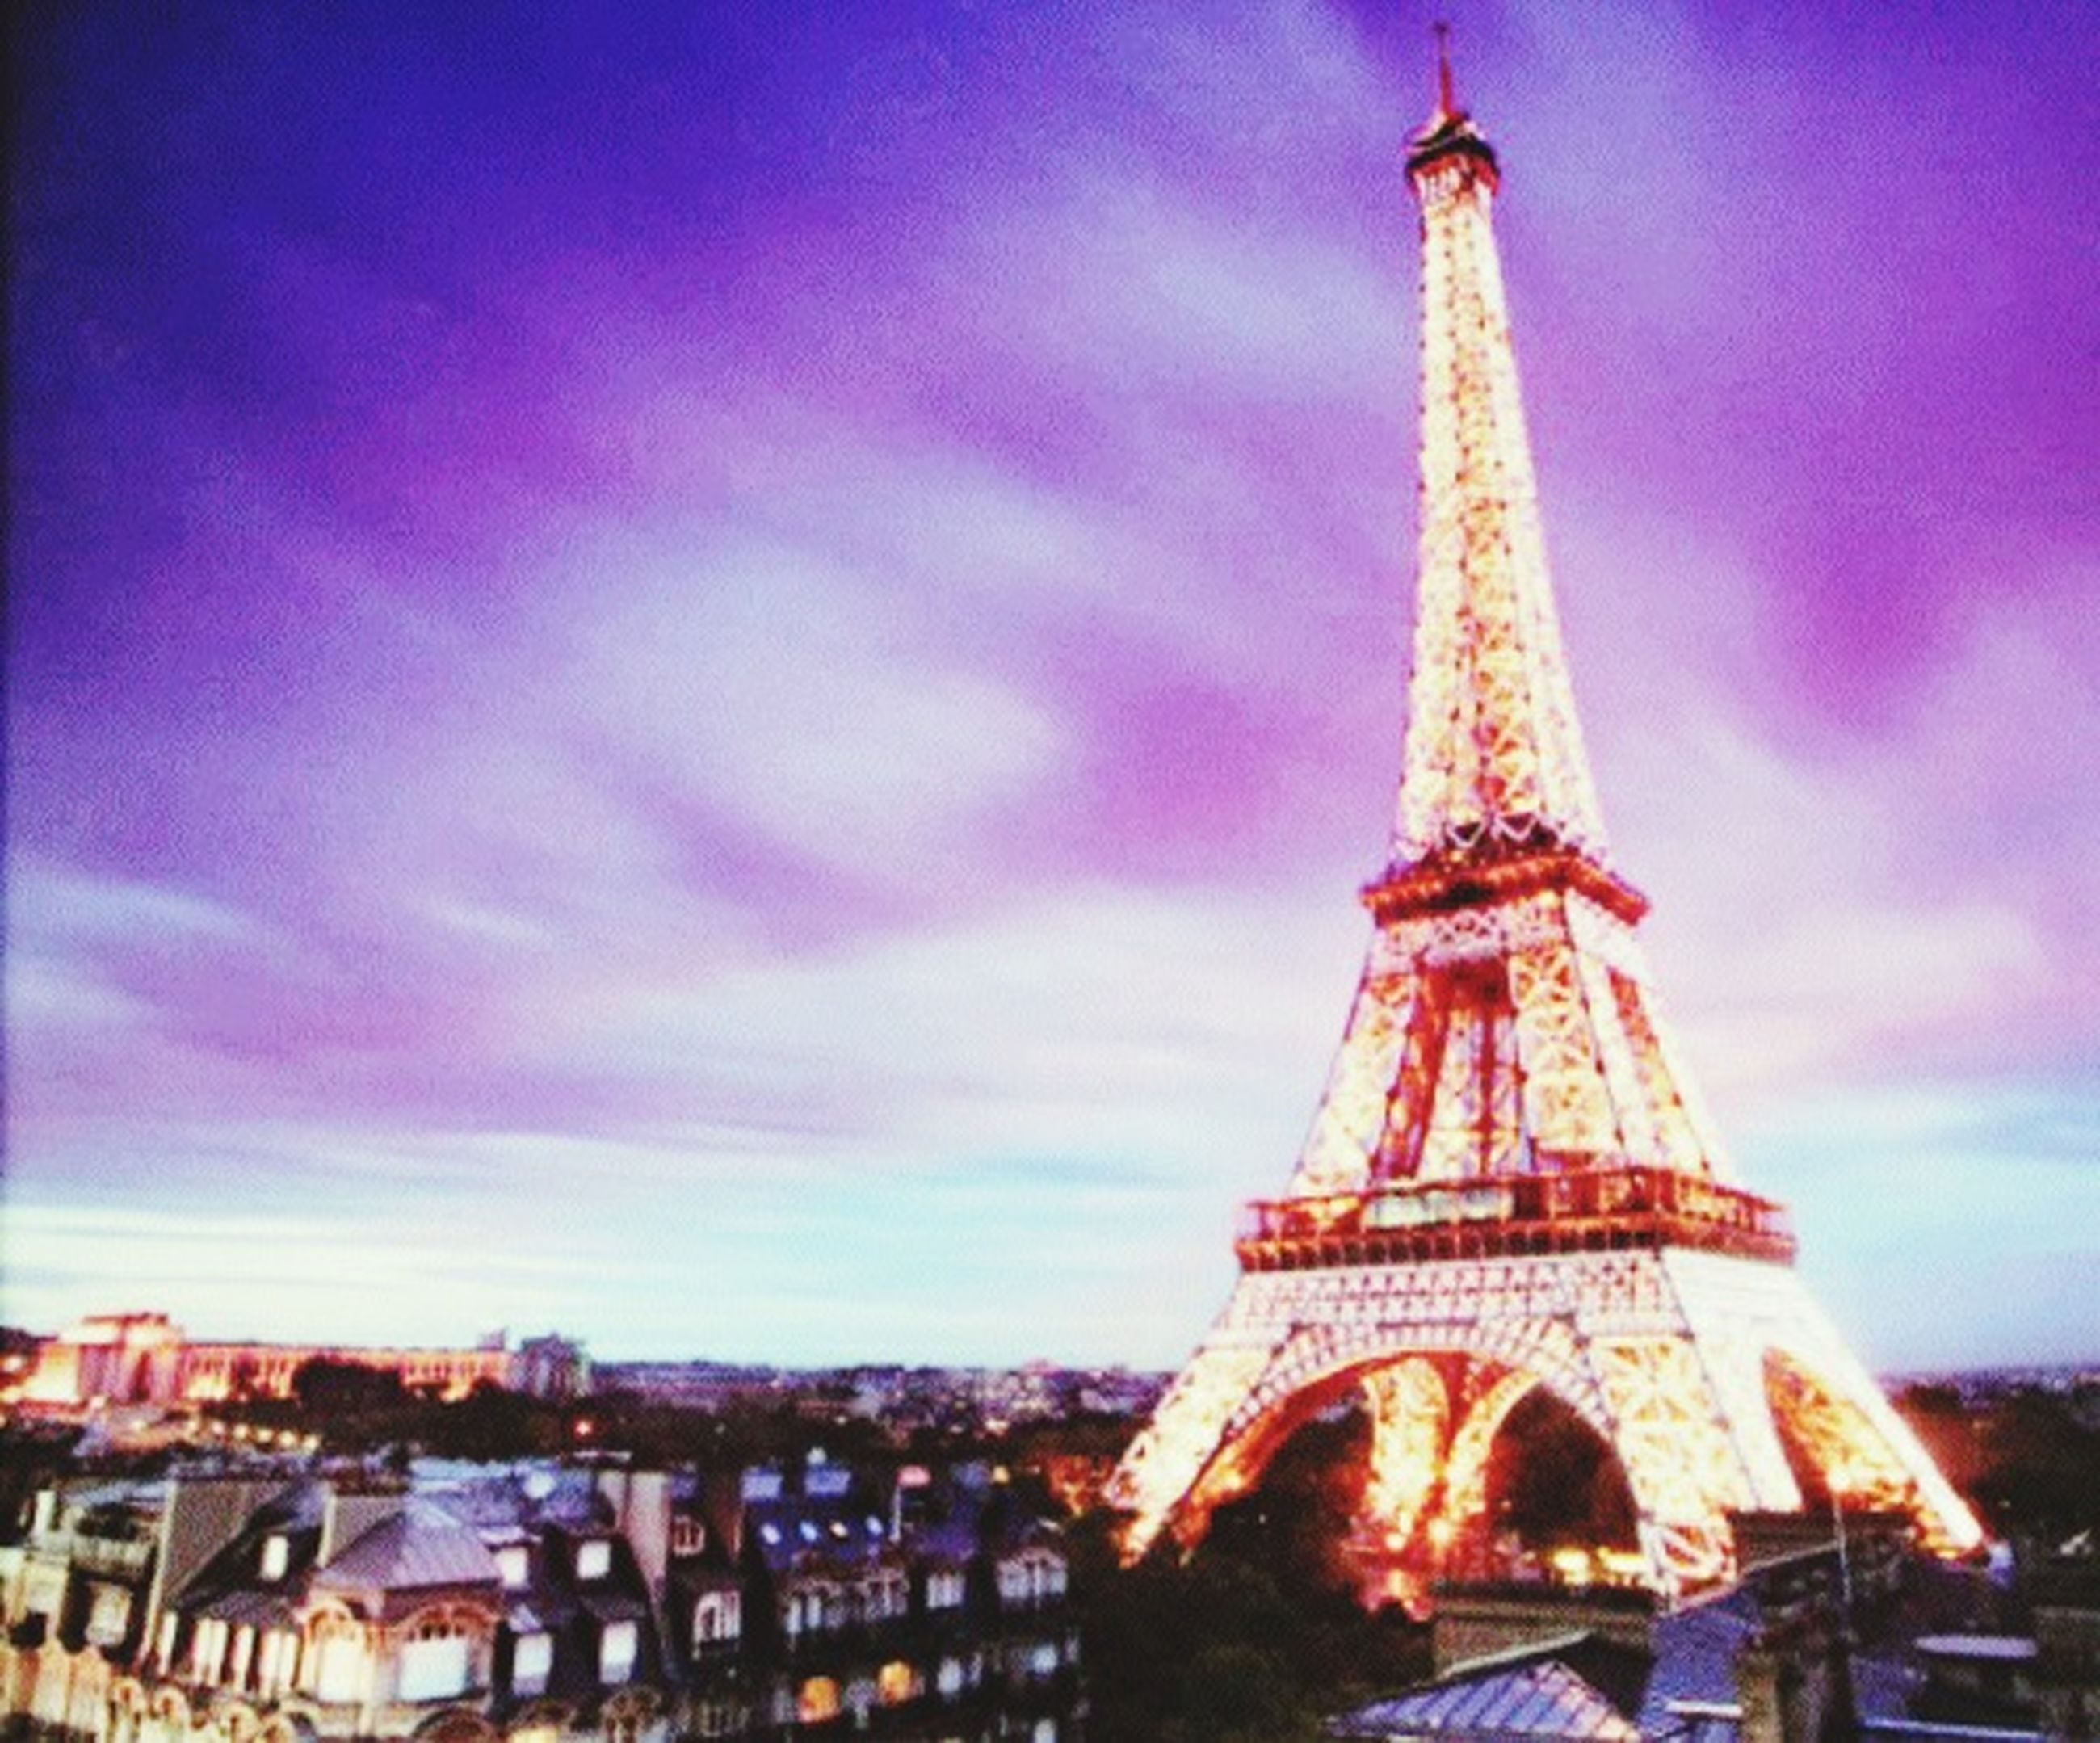 architecture, built structure, international landmark, famous place, travel destinations, capital cities, eiffel tower, tourism, tower, travel, building exterior, tall - high, city, sky, culture, low angle view, cloud - sky, spire, dusk, history